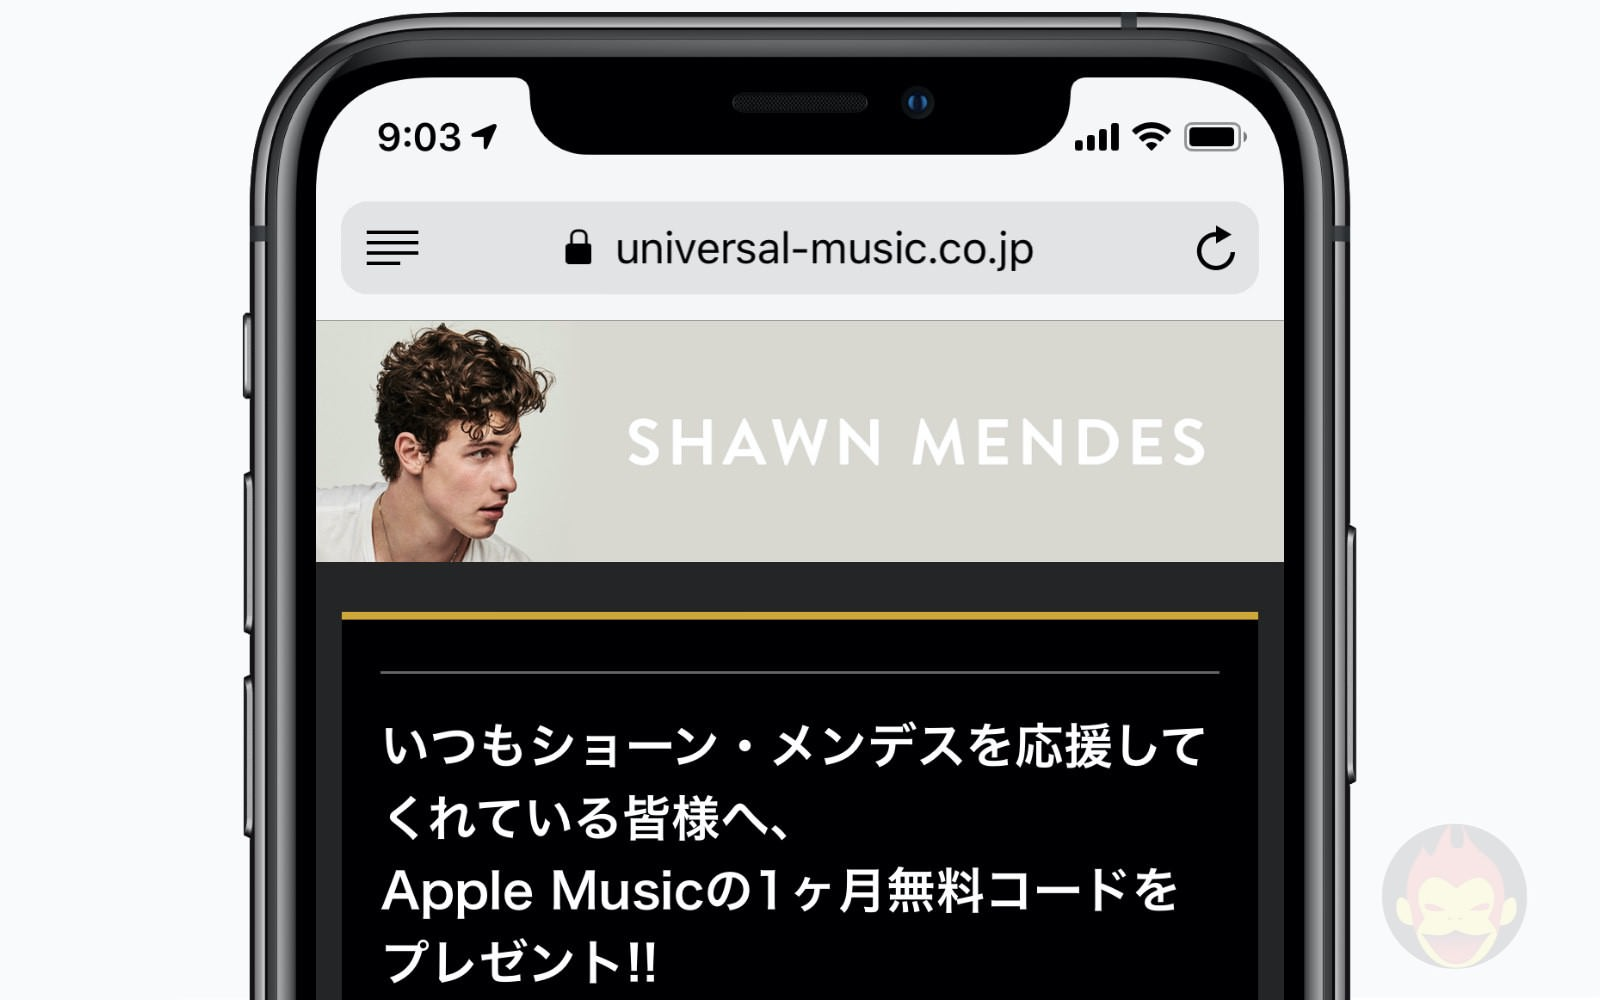 Apple Music Code from Universal Music Japan